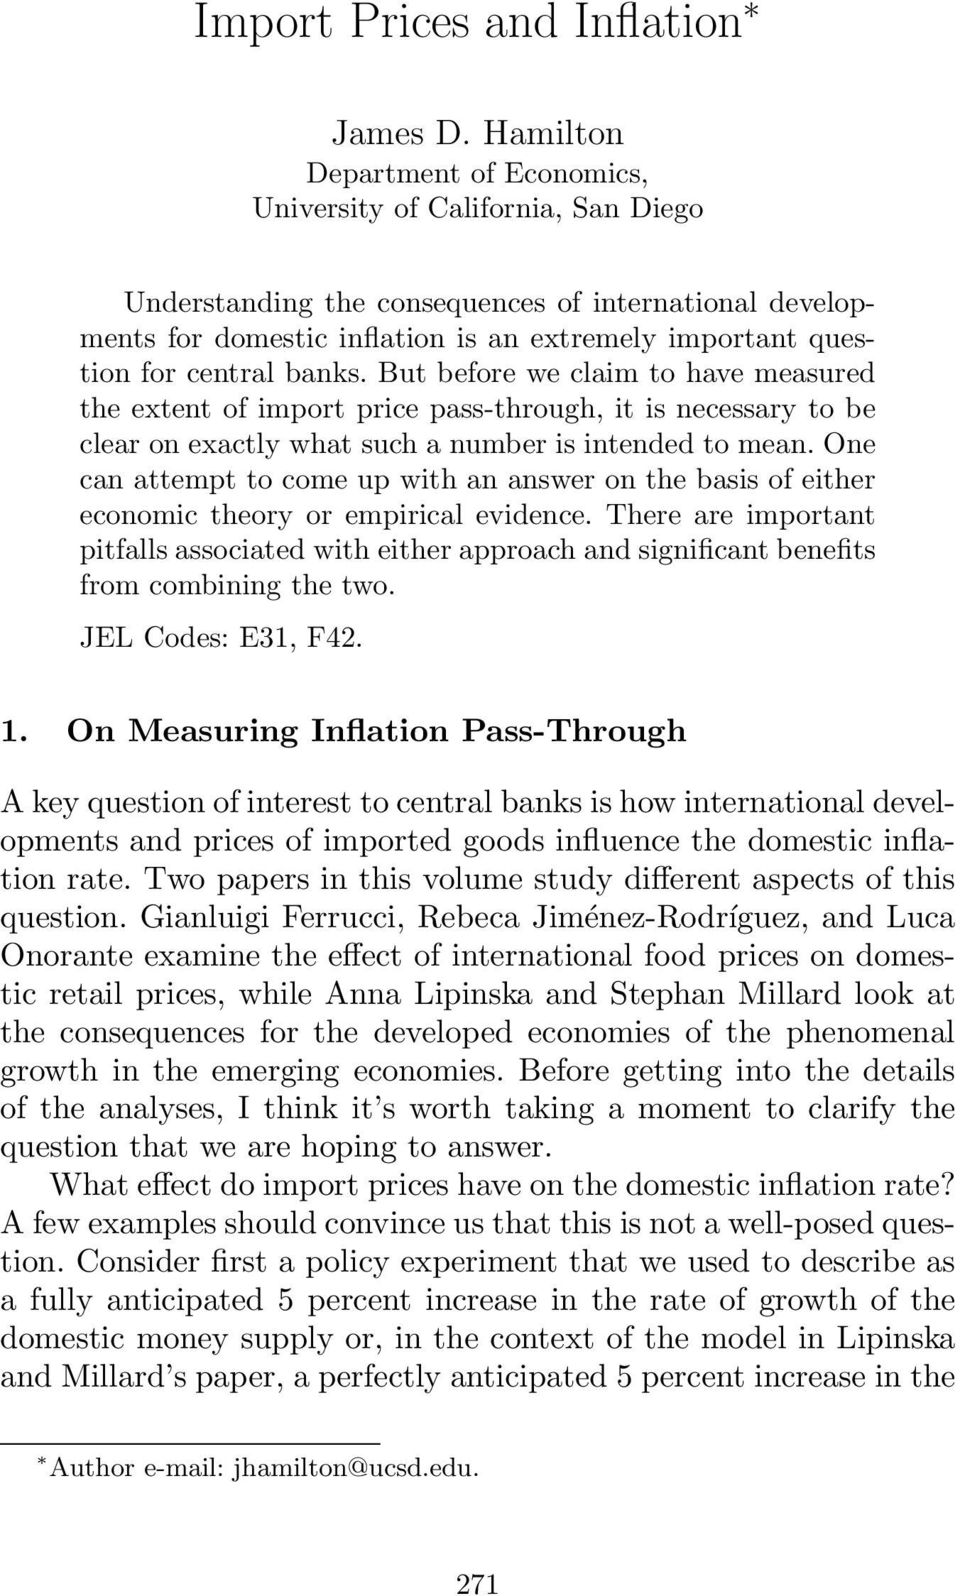 central banks. But before we claim to have measured the extent of import price pass-through, it is necessary to be clear on exactly what such a number is intended to mean.